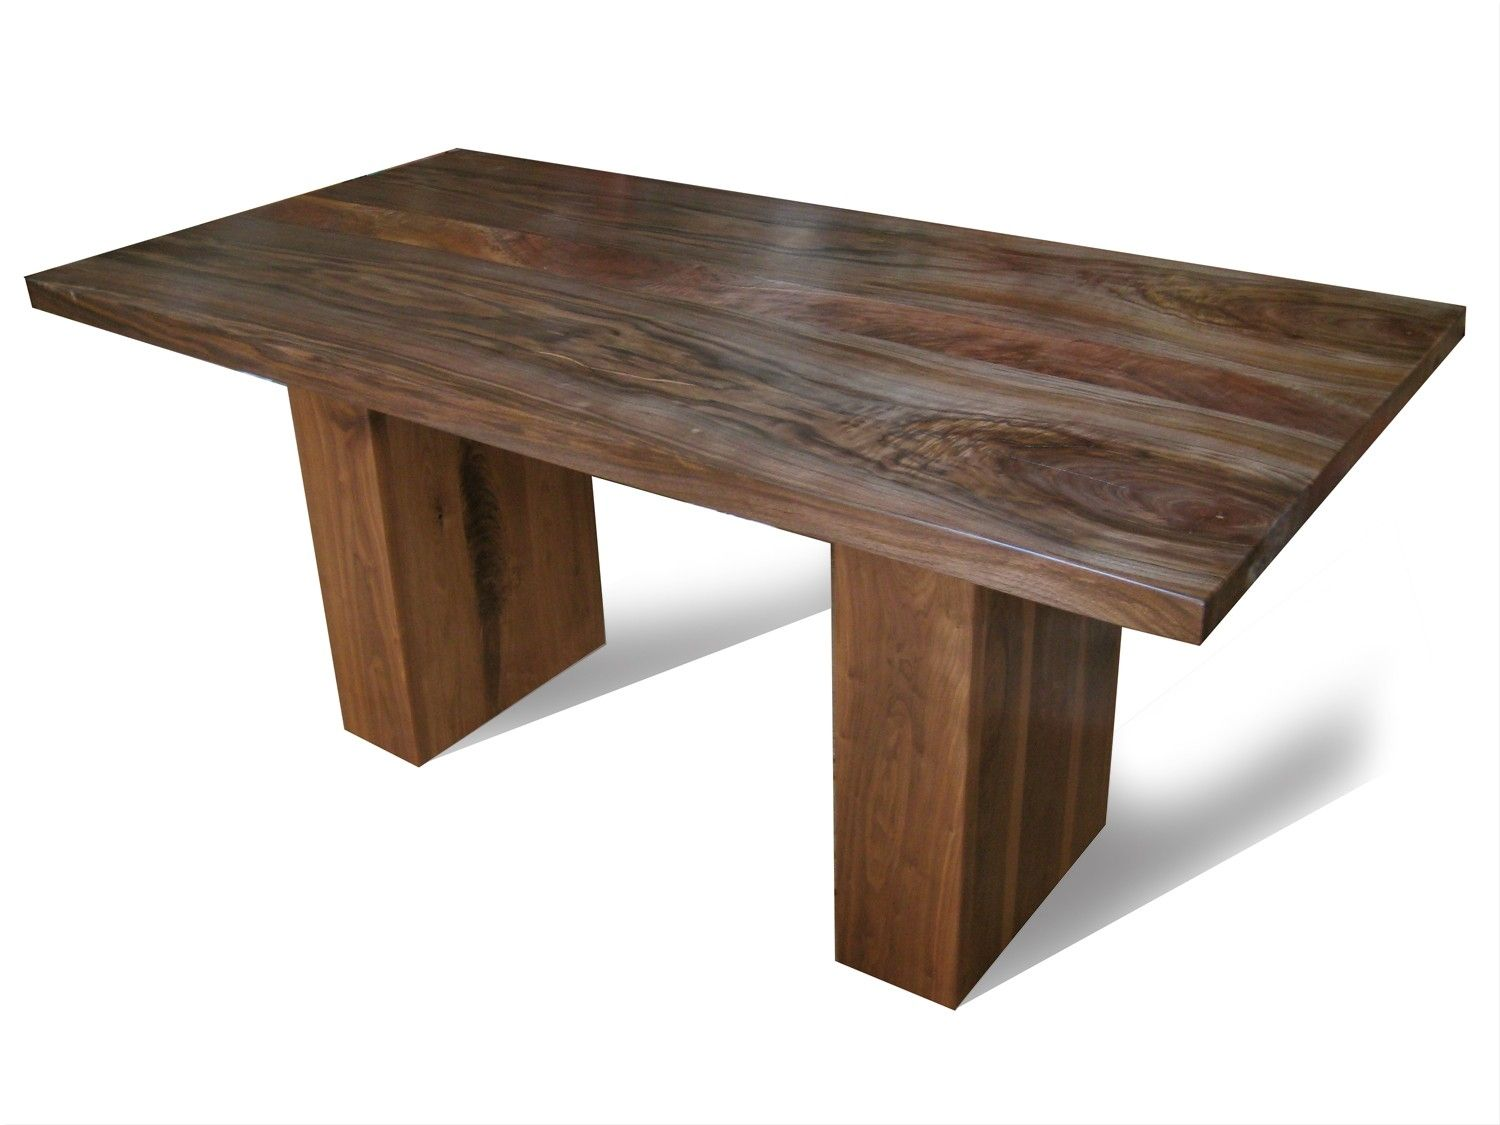 Custom Made Walnut Dining Table With Pedestal Legs by Fix  : 36551148928 from www.custommade.com size 1500 x 1125 jpeg 98kB